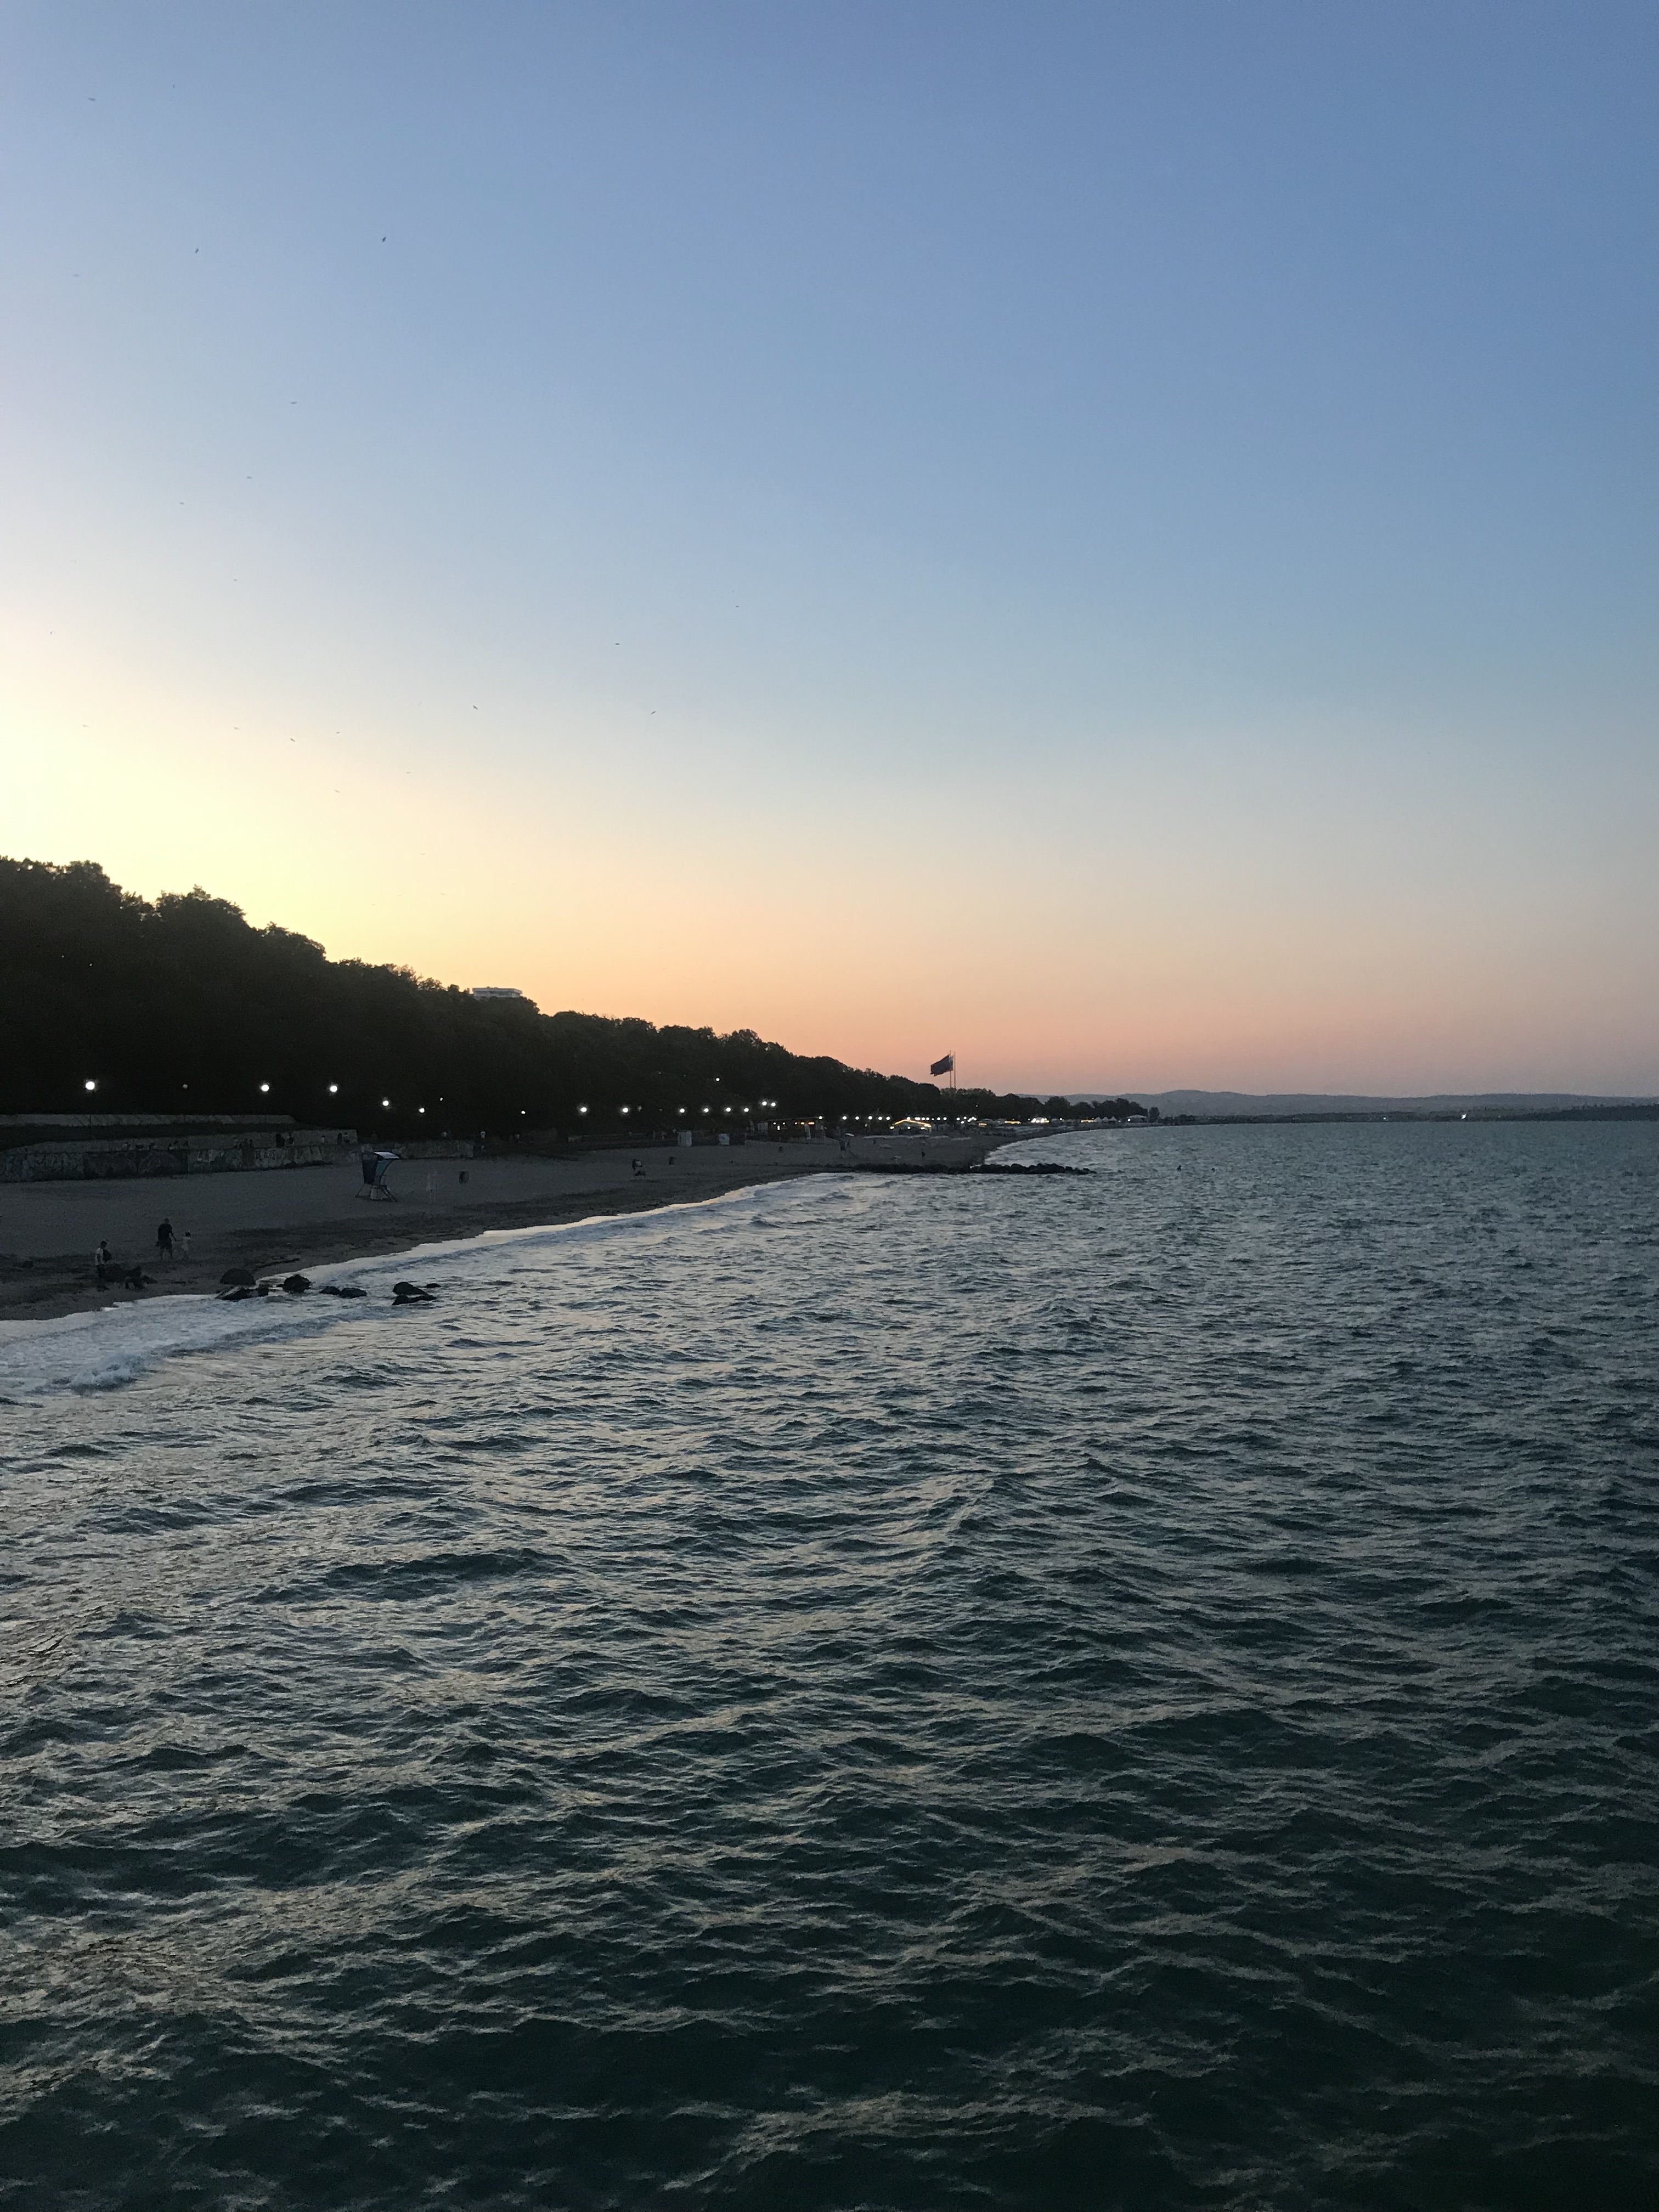 First impression of the Black Sea